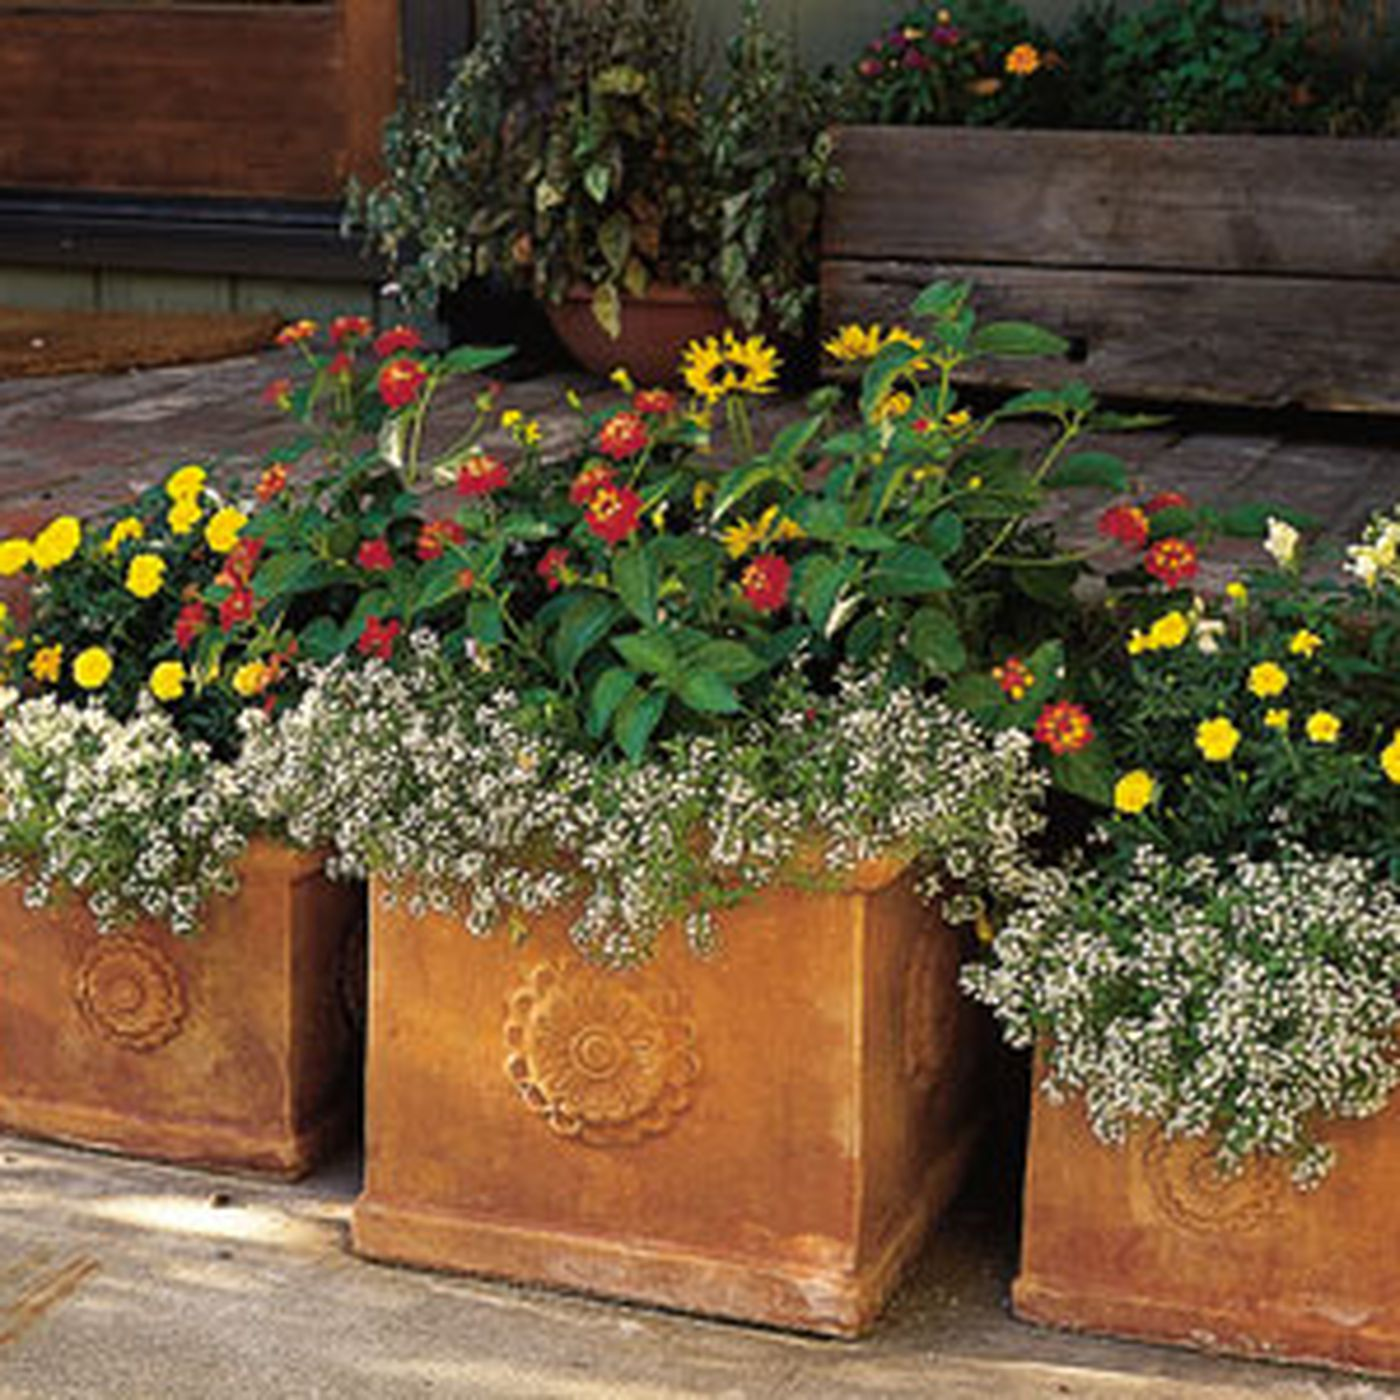 How To Pot A Plant And Create A Container Garden This Old House